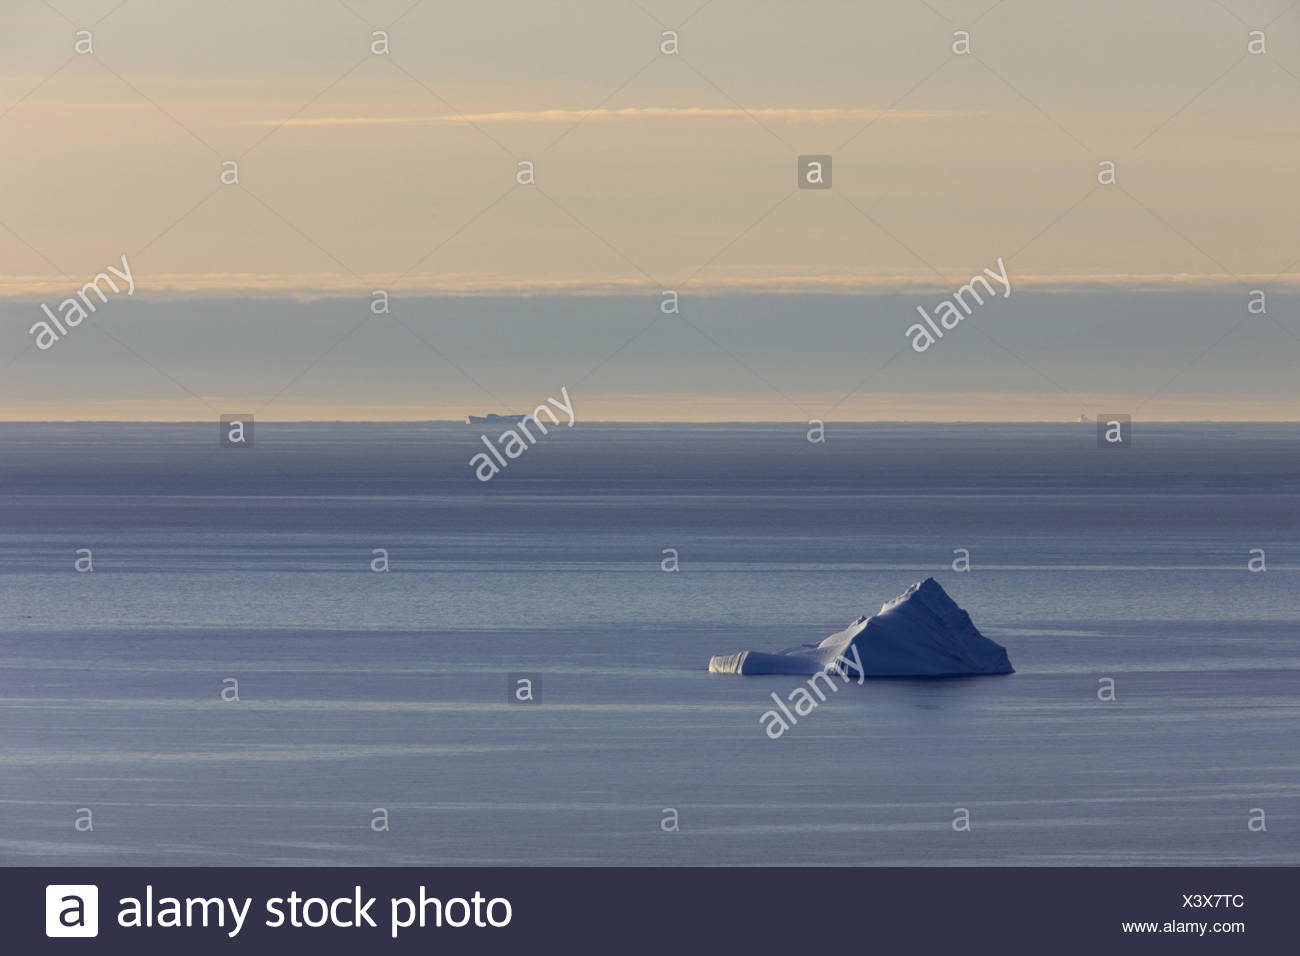 Greenland, Upernavik, Melville Bay, sea, icebergs, North-Western Greenland, the Arctic, view, width, distance, horizon, sky, cloudies, E sharp, drift ice, glacier ice, copy square, graphically, films, - Stock Image